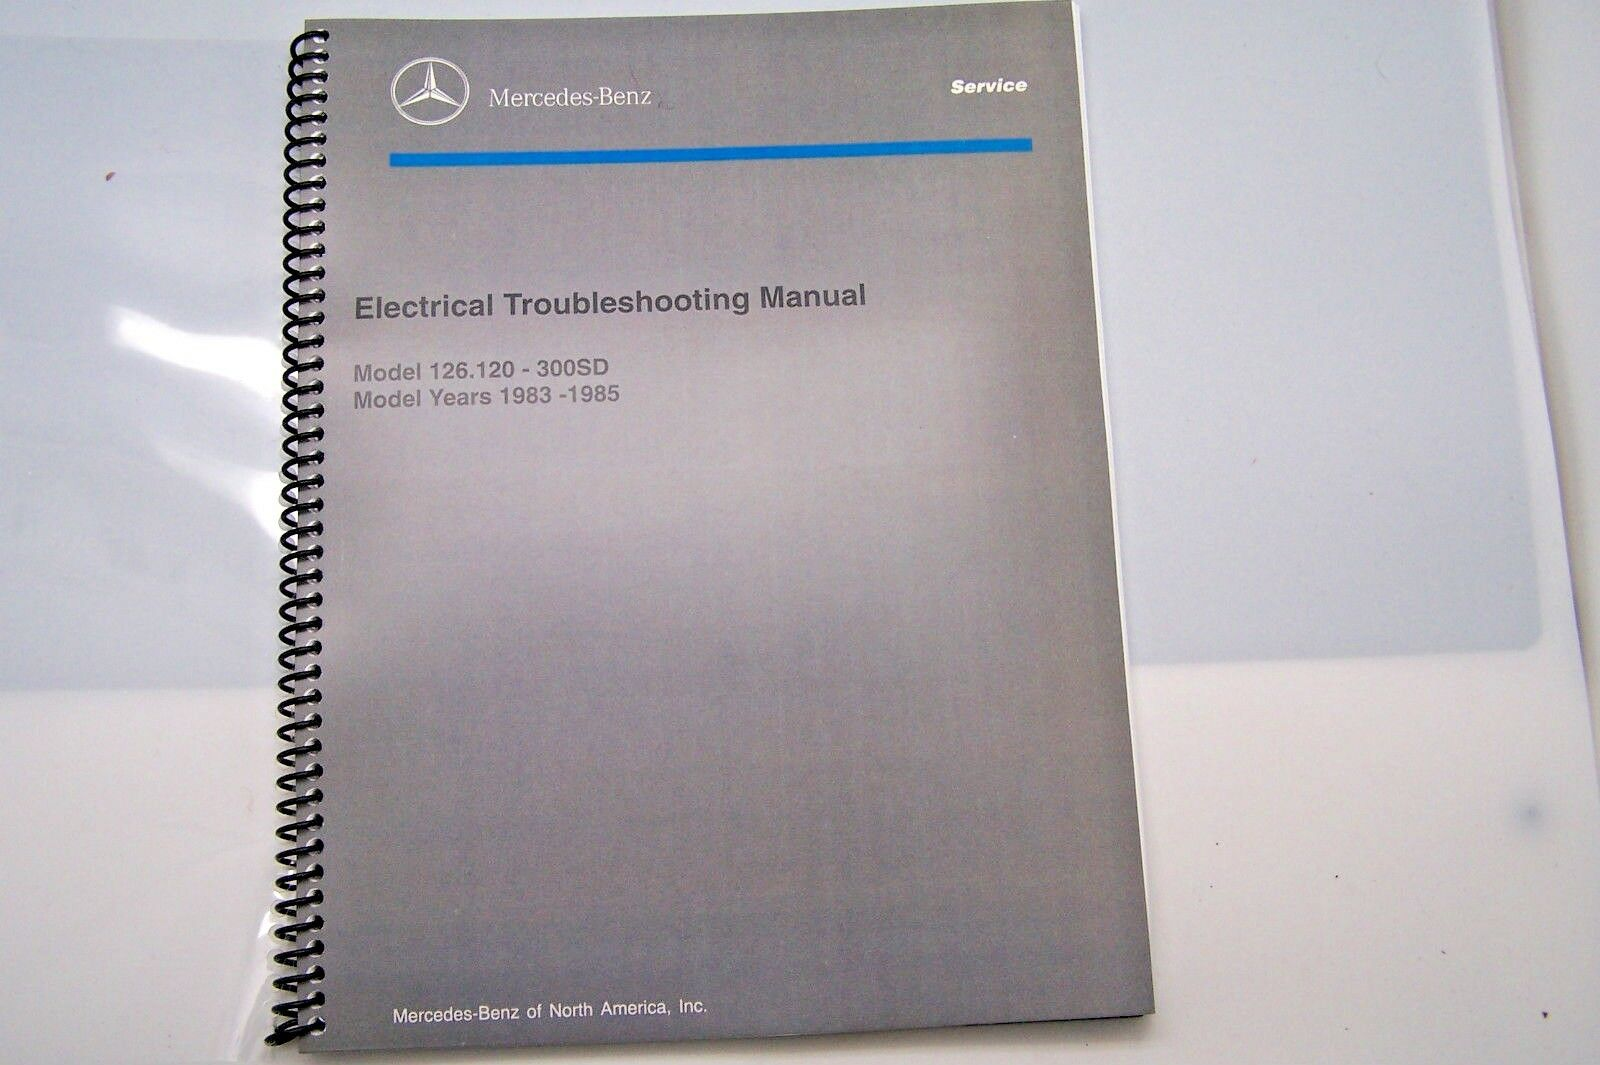 300sd Owners Manual Mercedes Benz Wiring Diagram 1985 1983 Electrical Service W126 1984 Rh Picclick Com Turbo Diesel